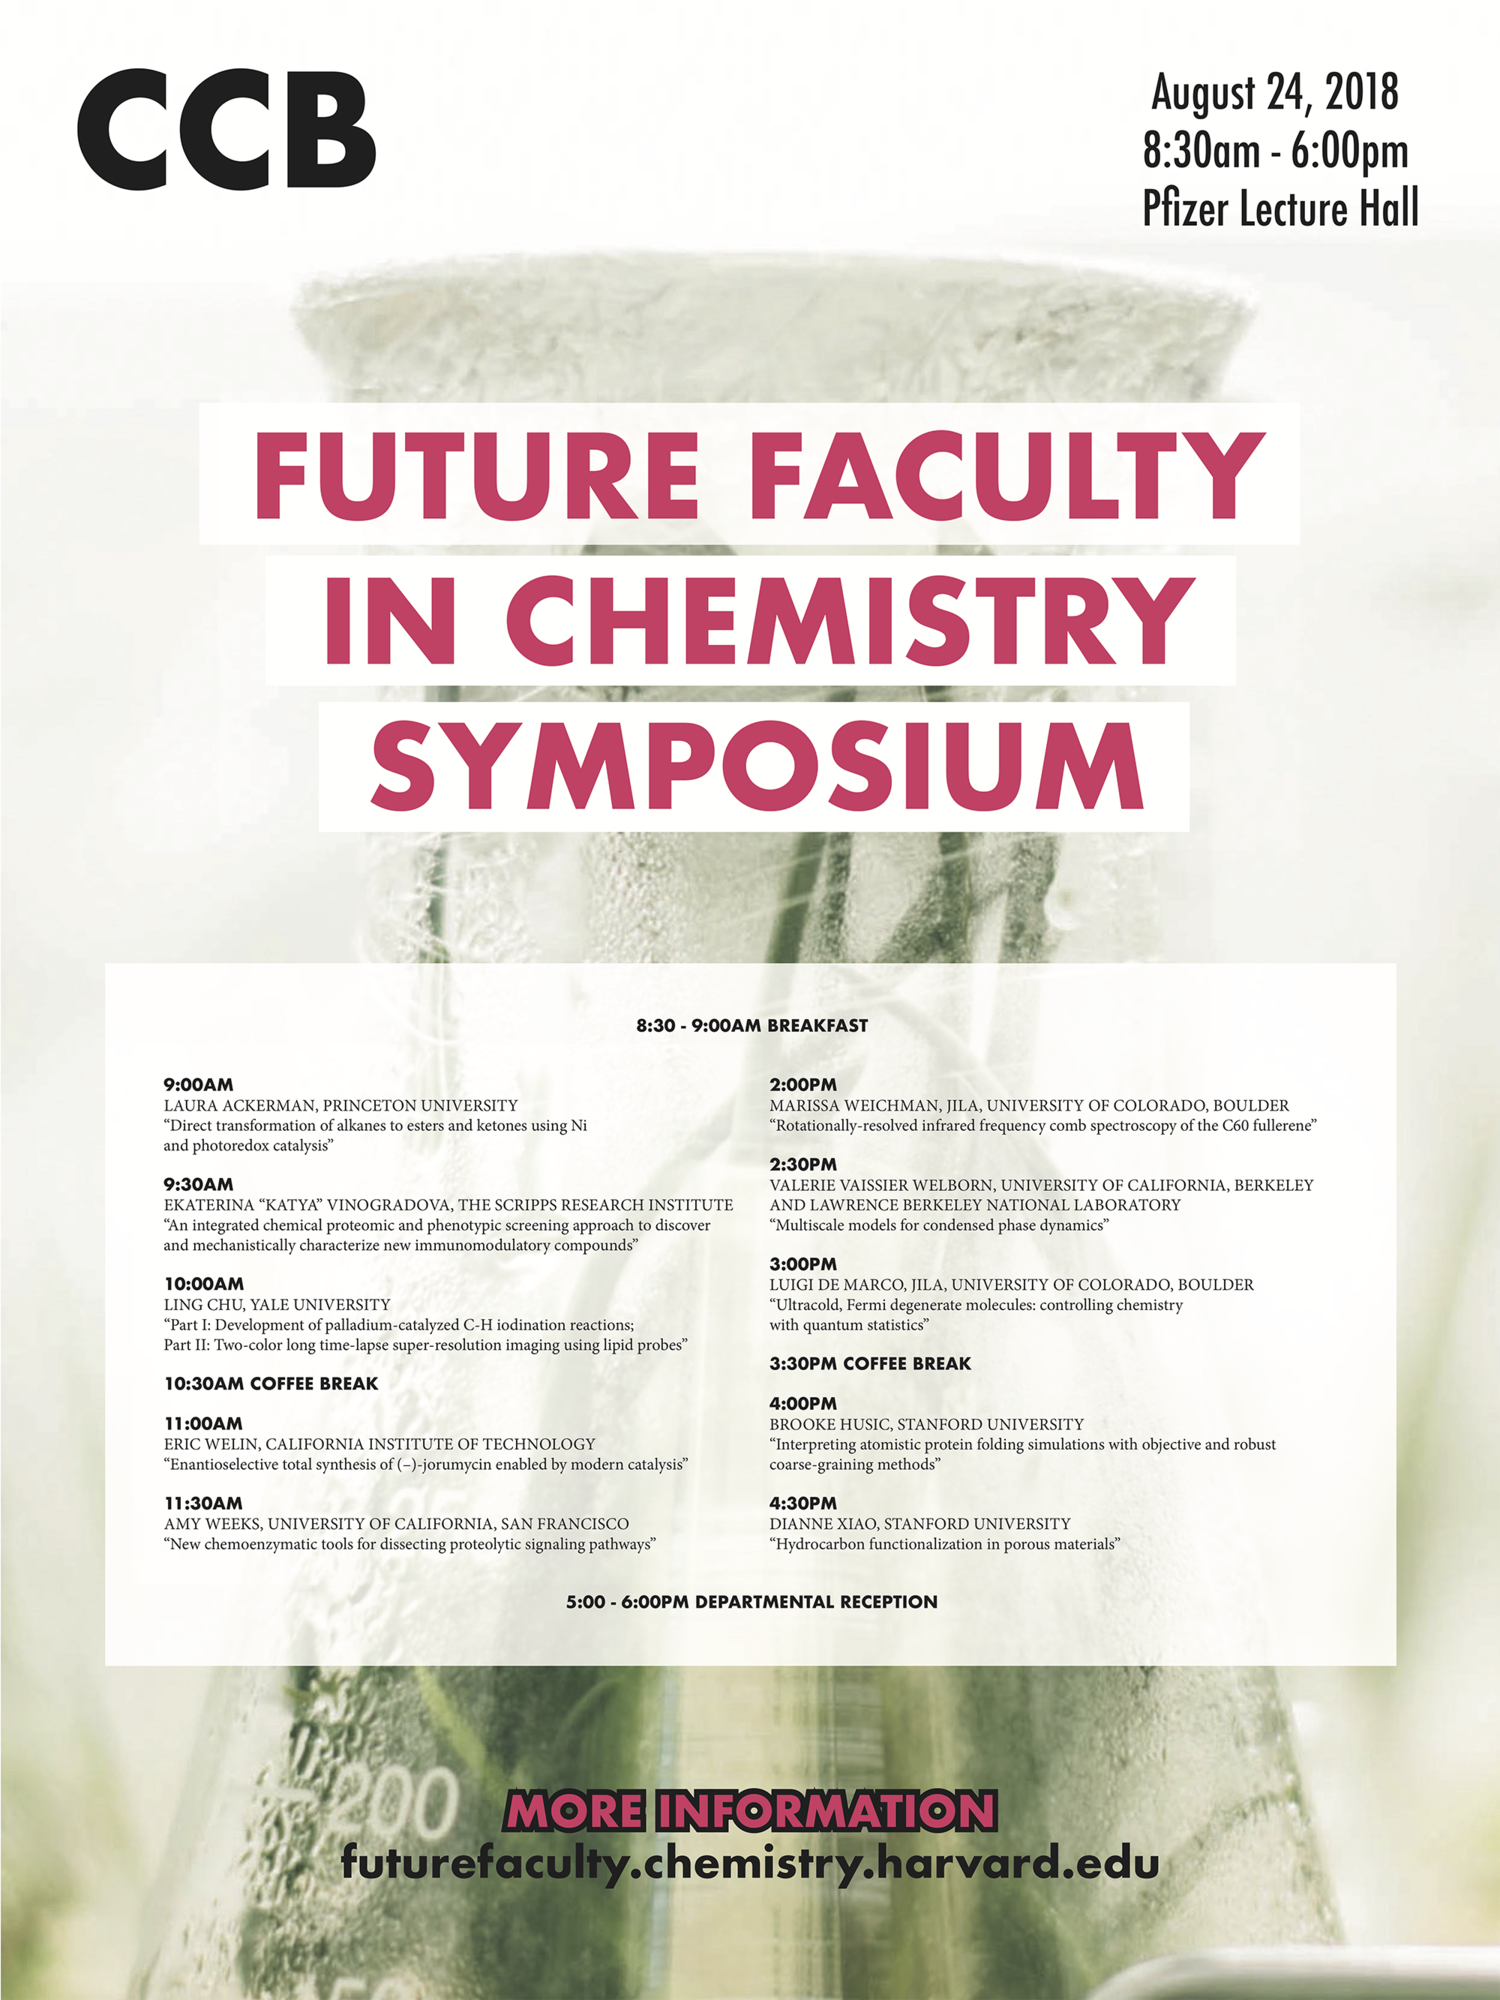 Future Faculty in Chemistry Symposium